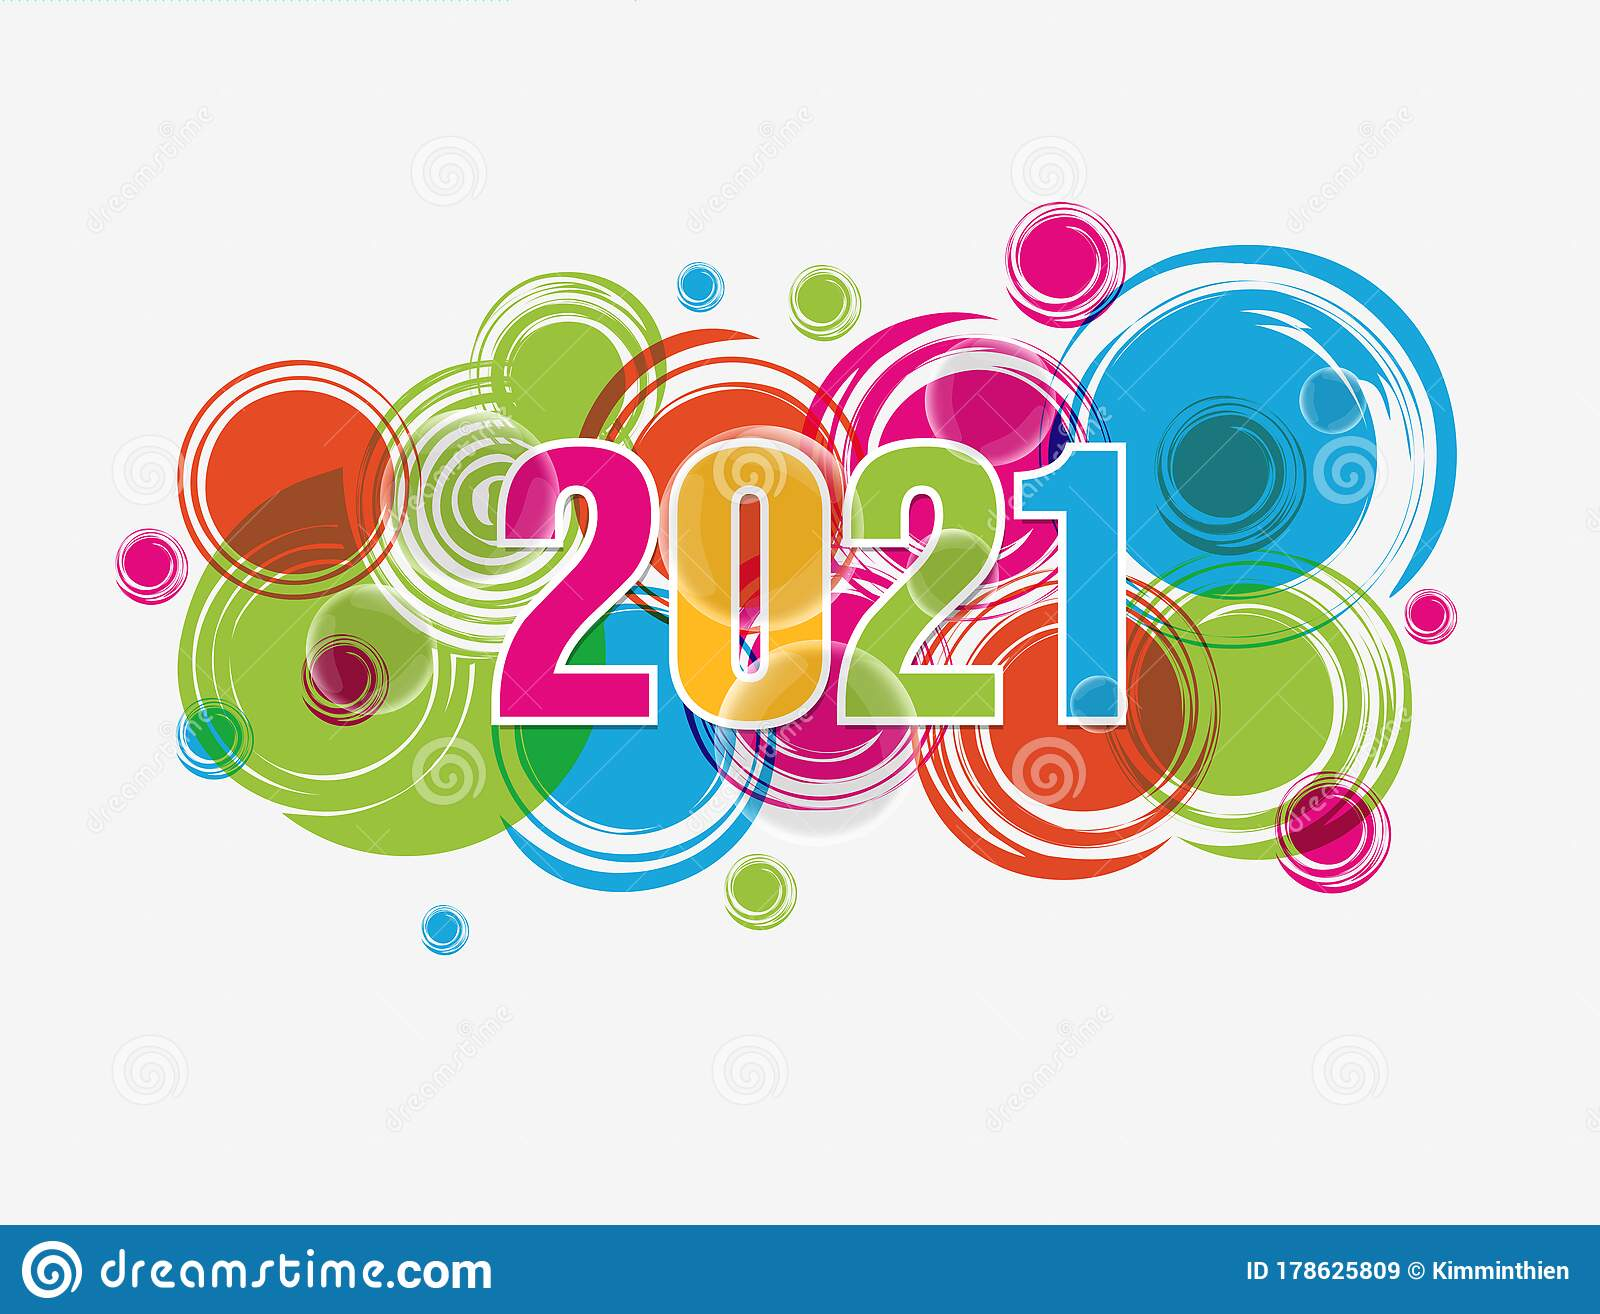 Happy new year 2021 stock vector. Illustration of holiday ...